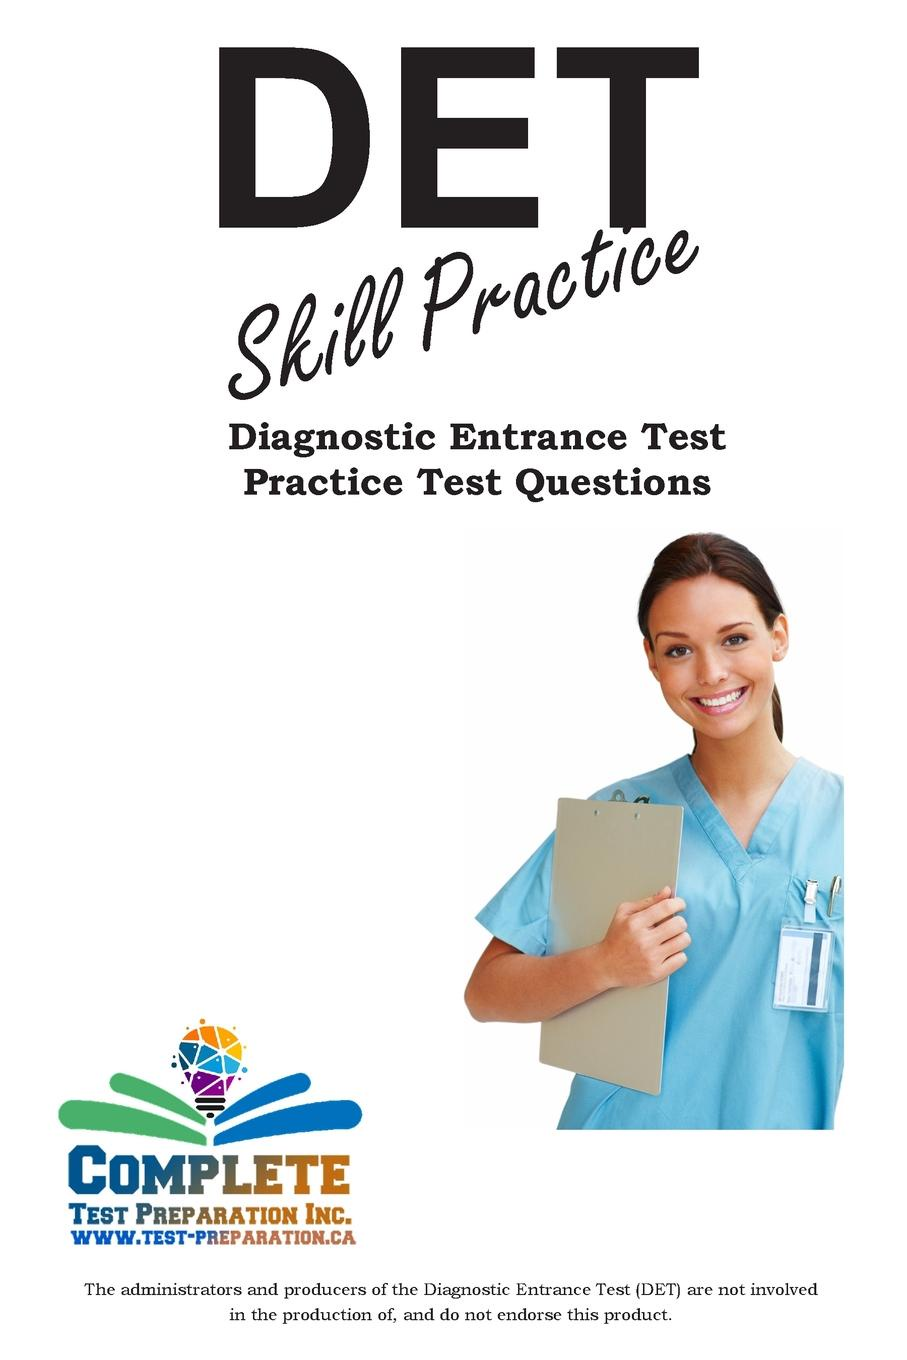 Complete Test Preparation Inc. DET Skill Practice. Practice test questions for the Diagnostic Entrance Test complete test preparation inc det test strategy winning multiple choice strategies for the diagnostic entrance test det